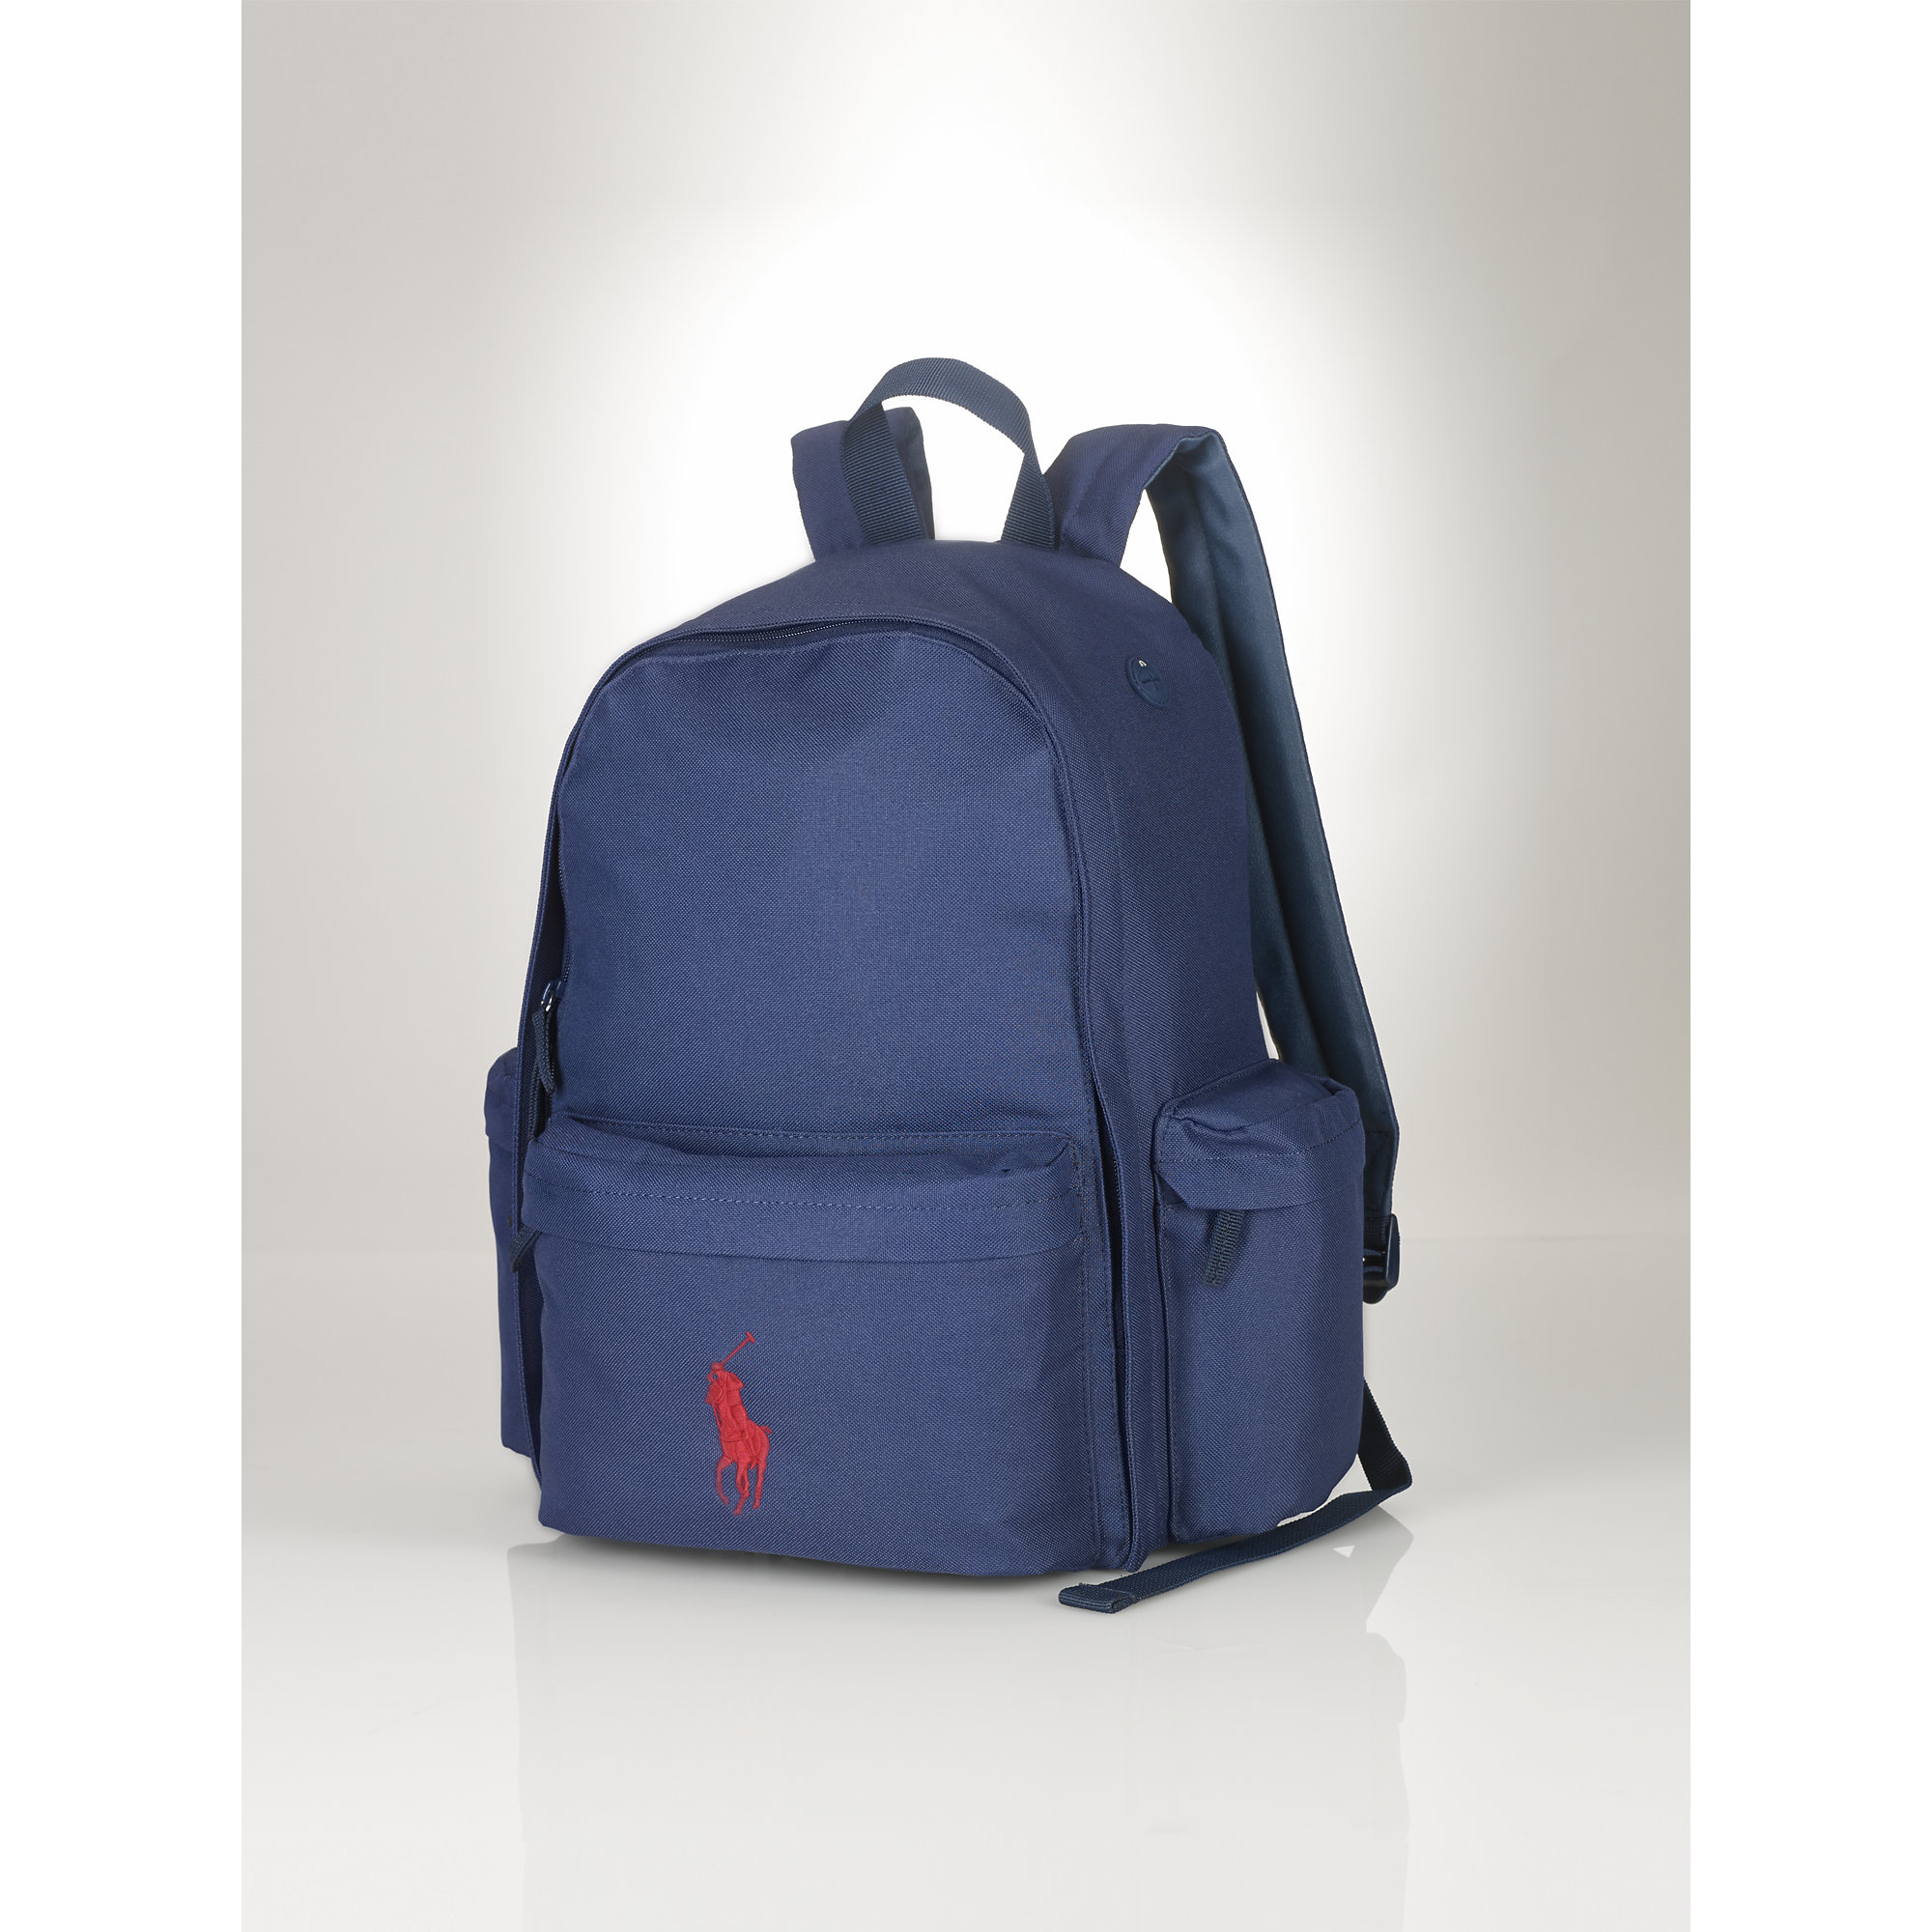 Ralph lauren Large Big Pony Backpack in Blue | Lyst